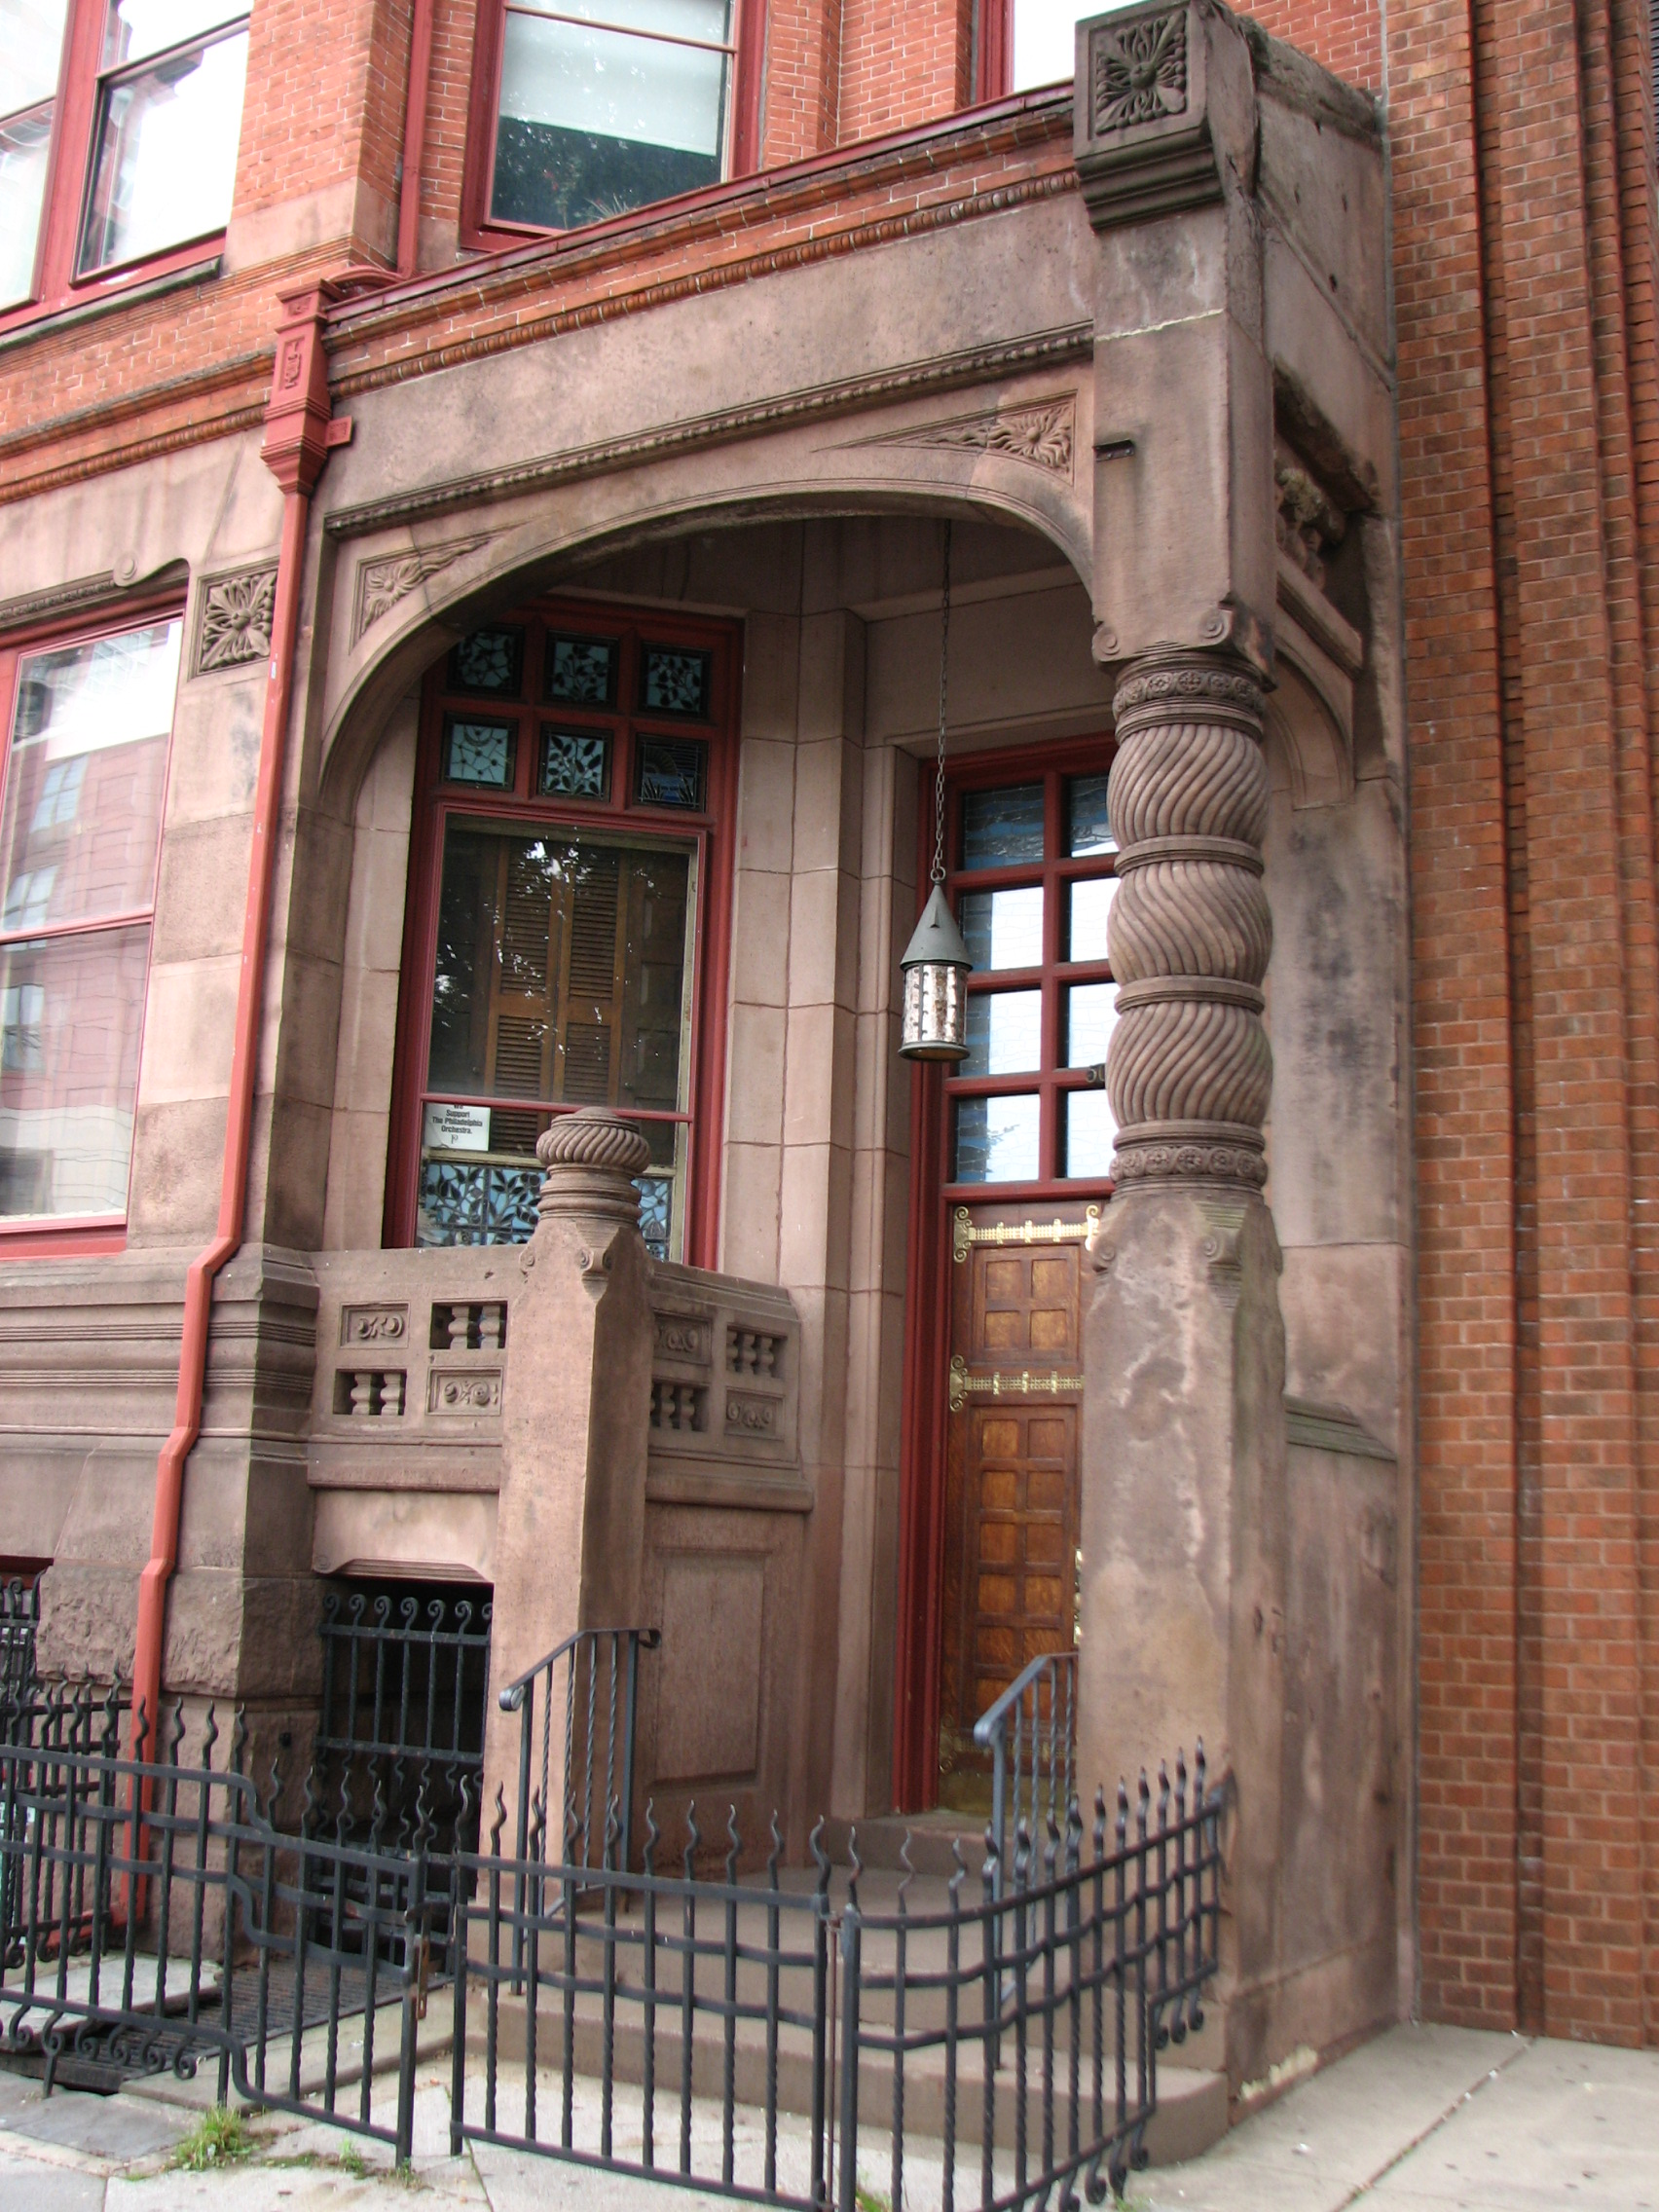 The entrance to the Lippincott House features elaborate ironwork and carved brownstone.